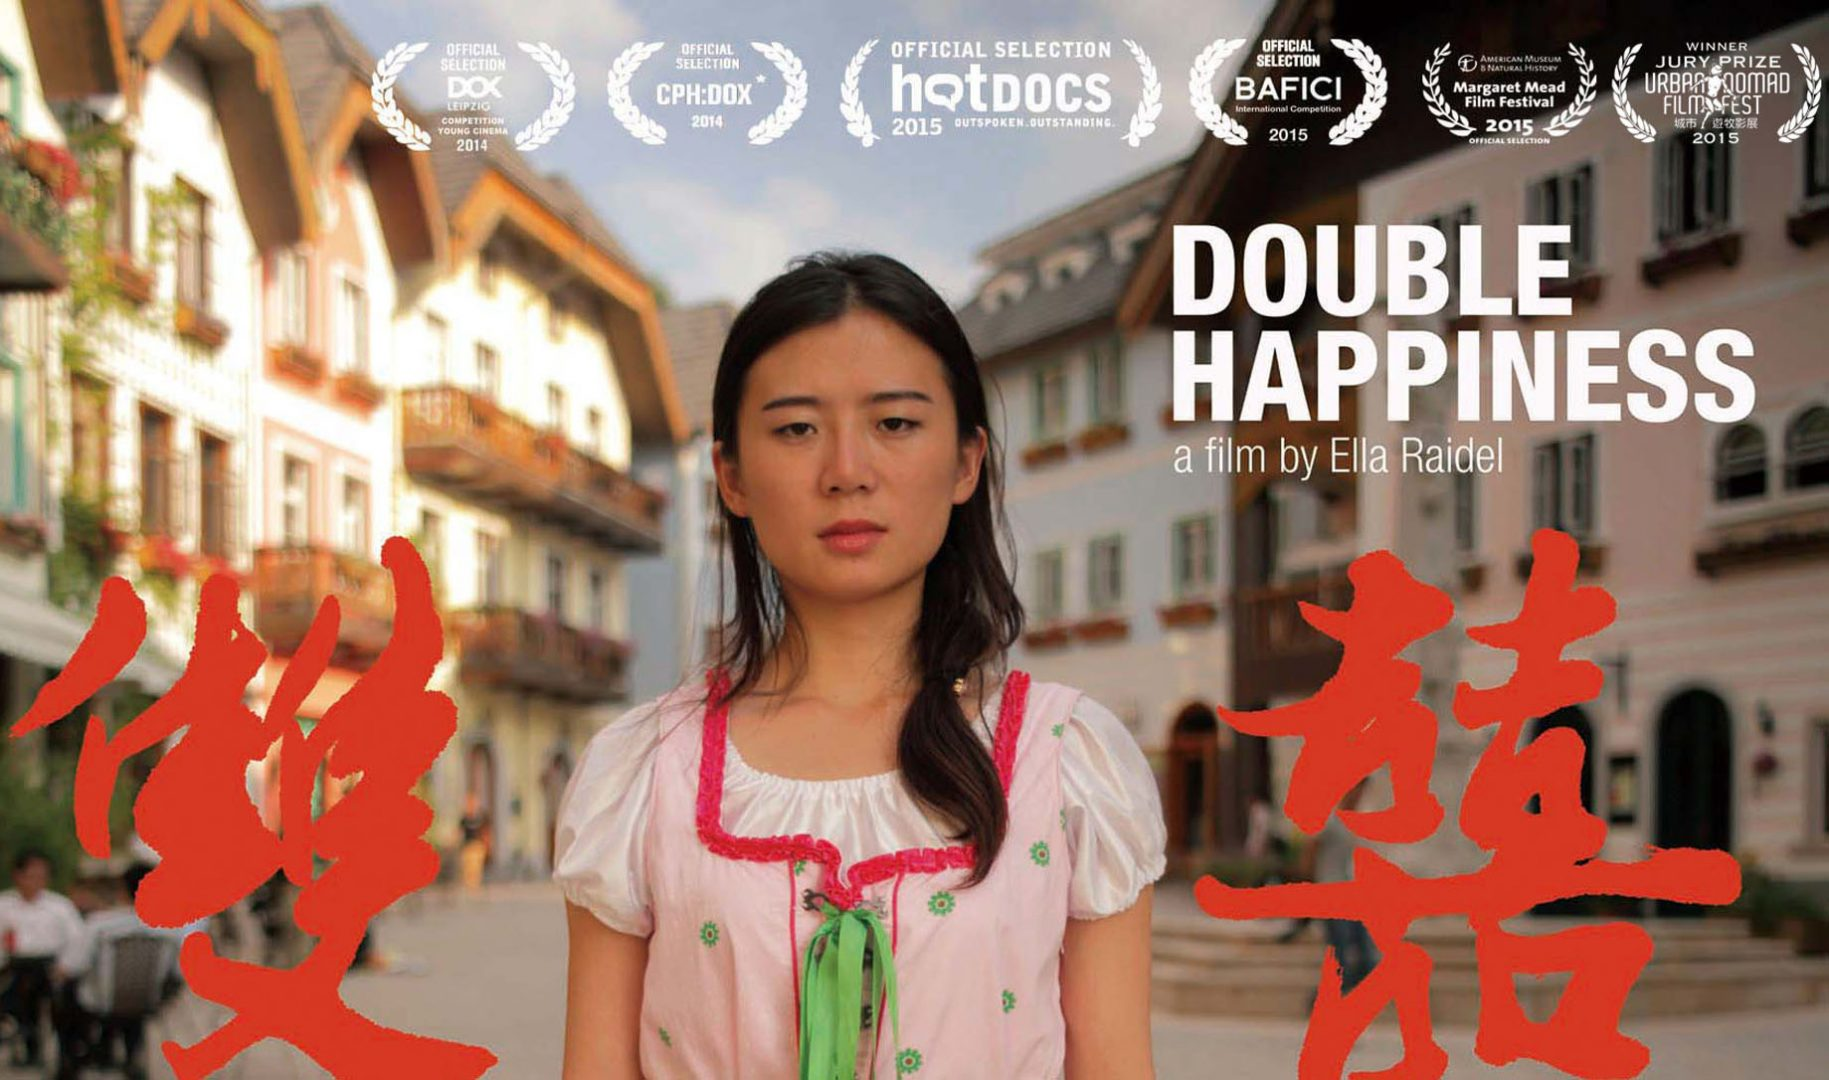 Kino Fotografic Double happiness